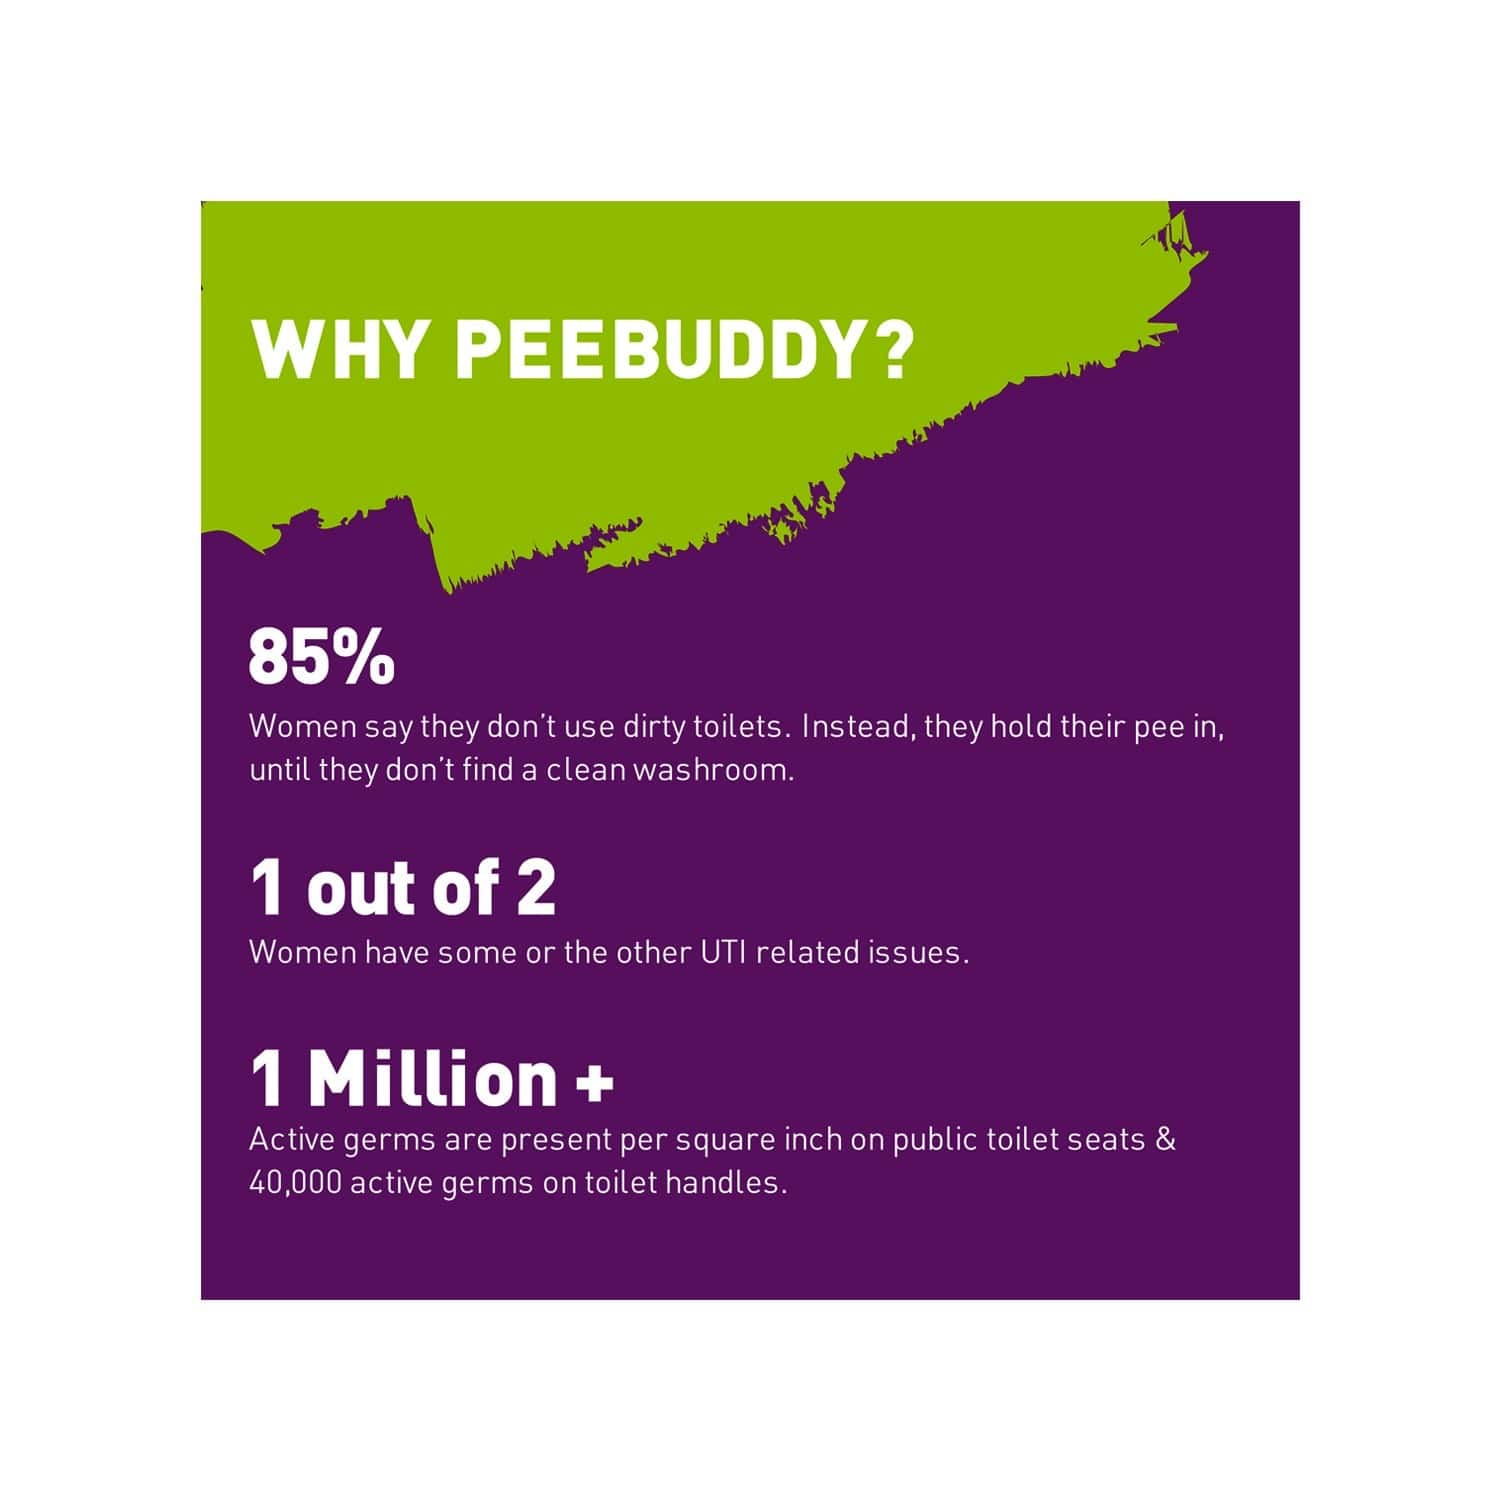 Peebuddy Stand & Pee Reusable Device For Women, Helps During Arthritis, Pregnancy & Road Trips, No More Squats - Pack Of 1